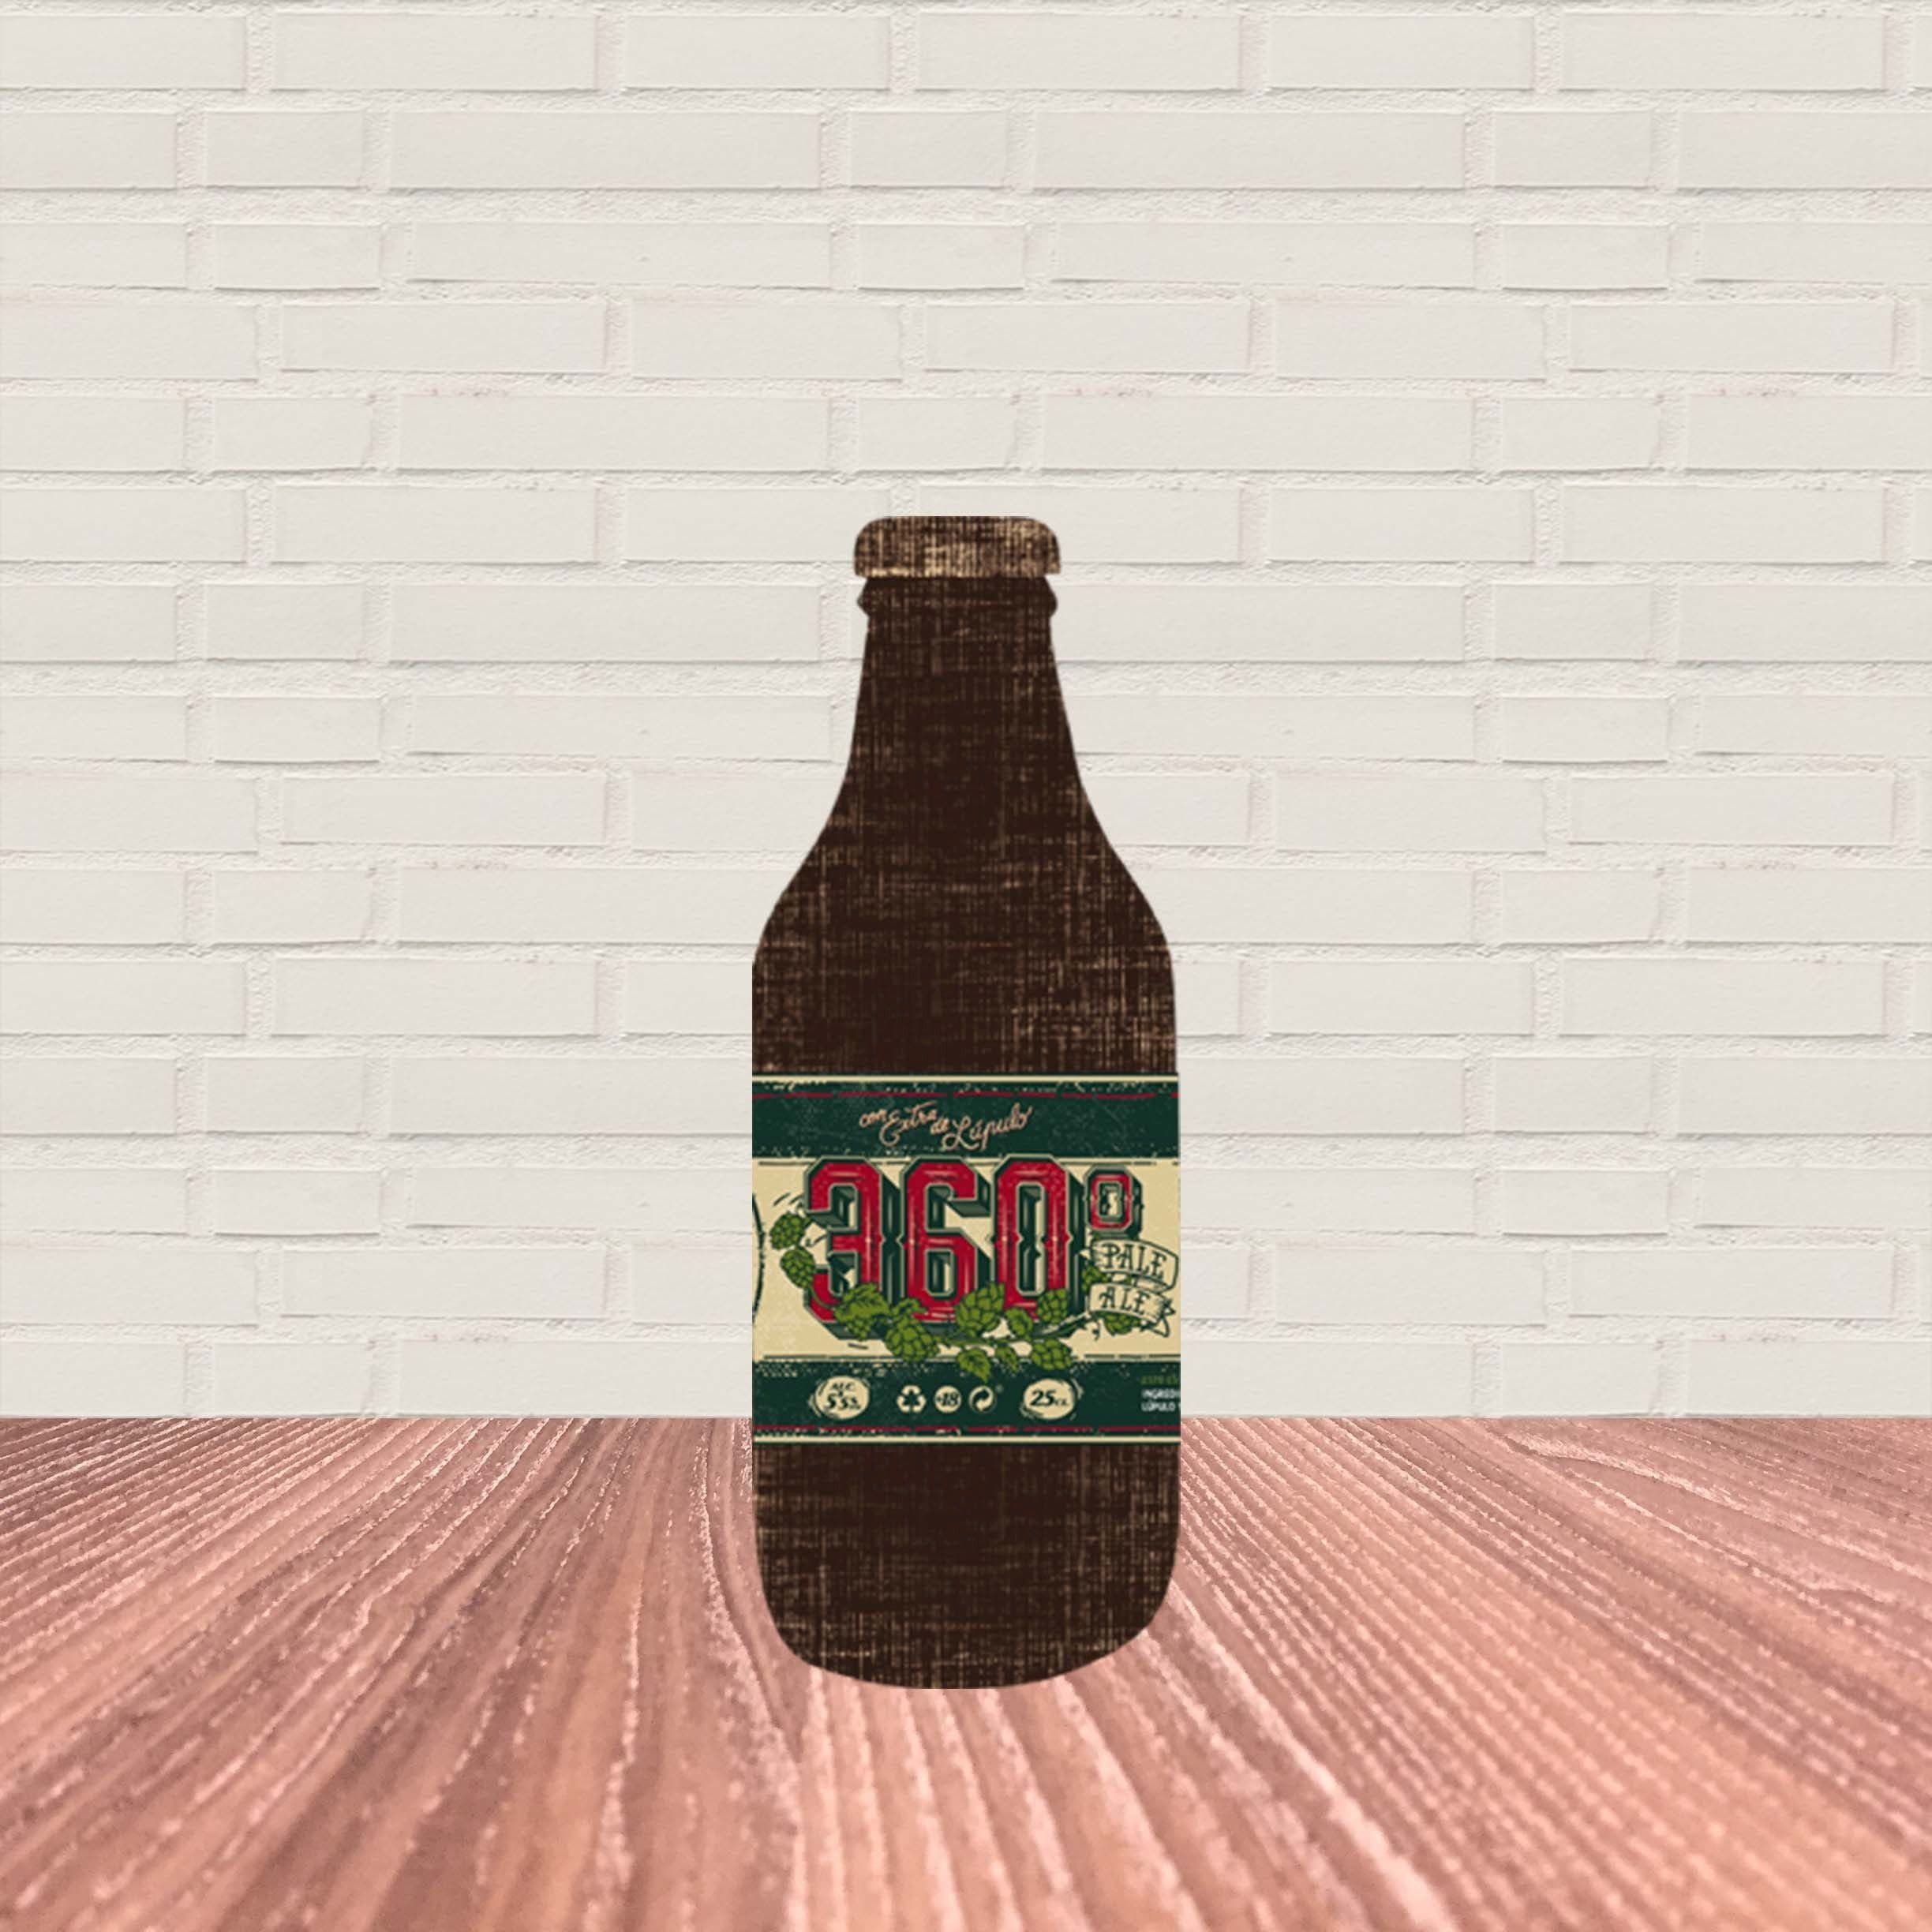 360 Pale Ale by La Virgen